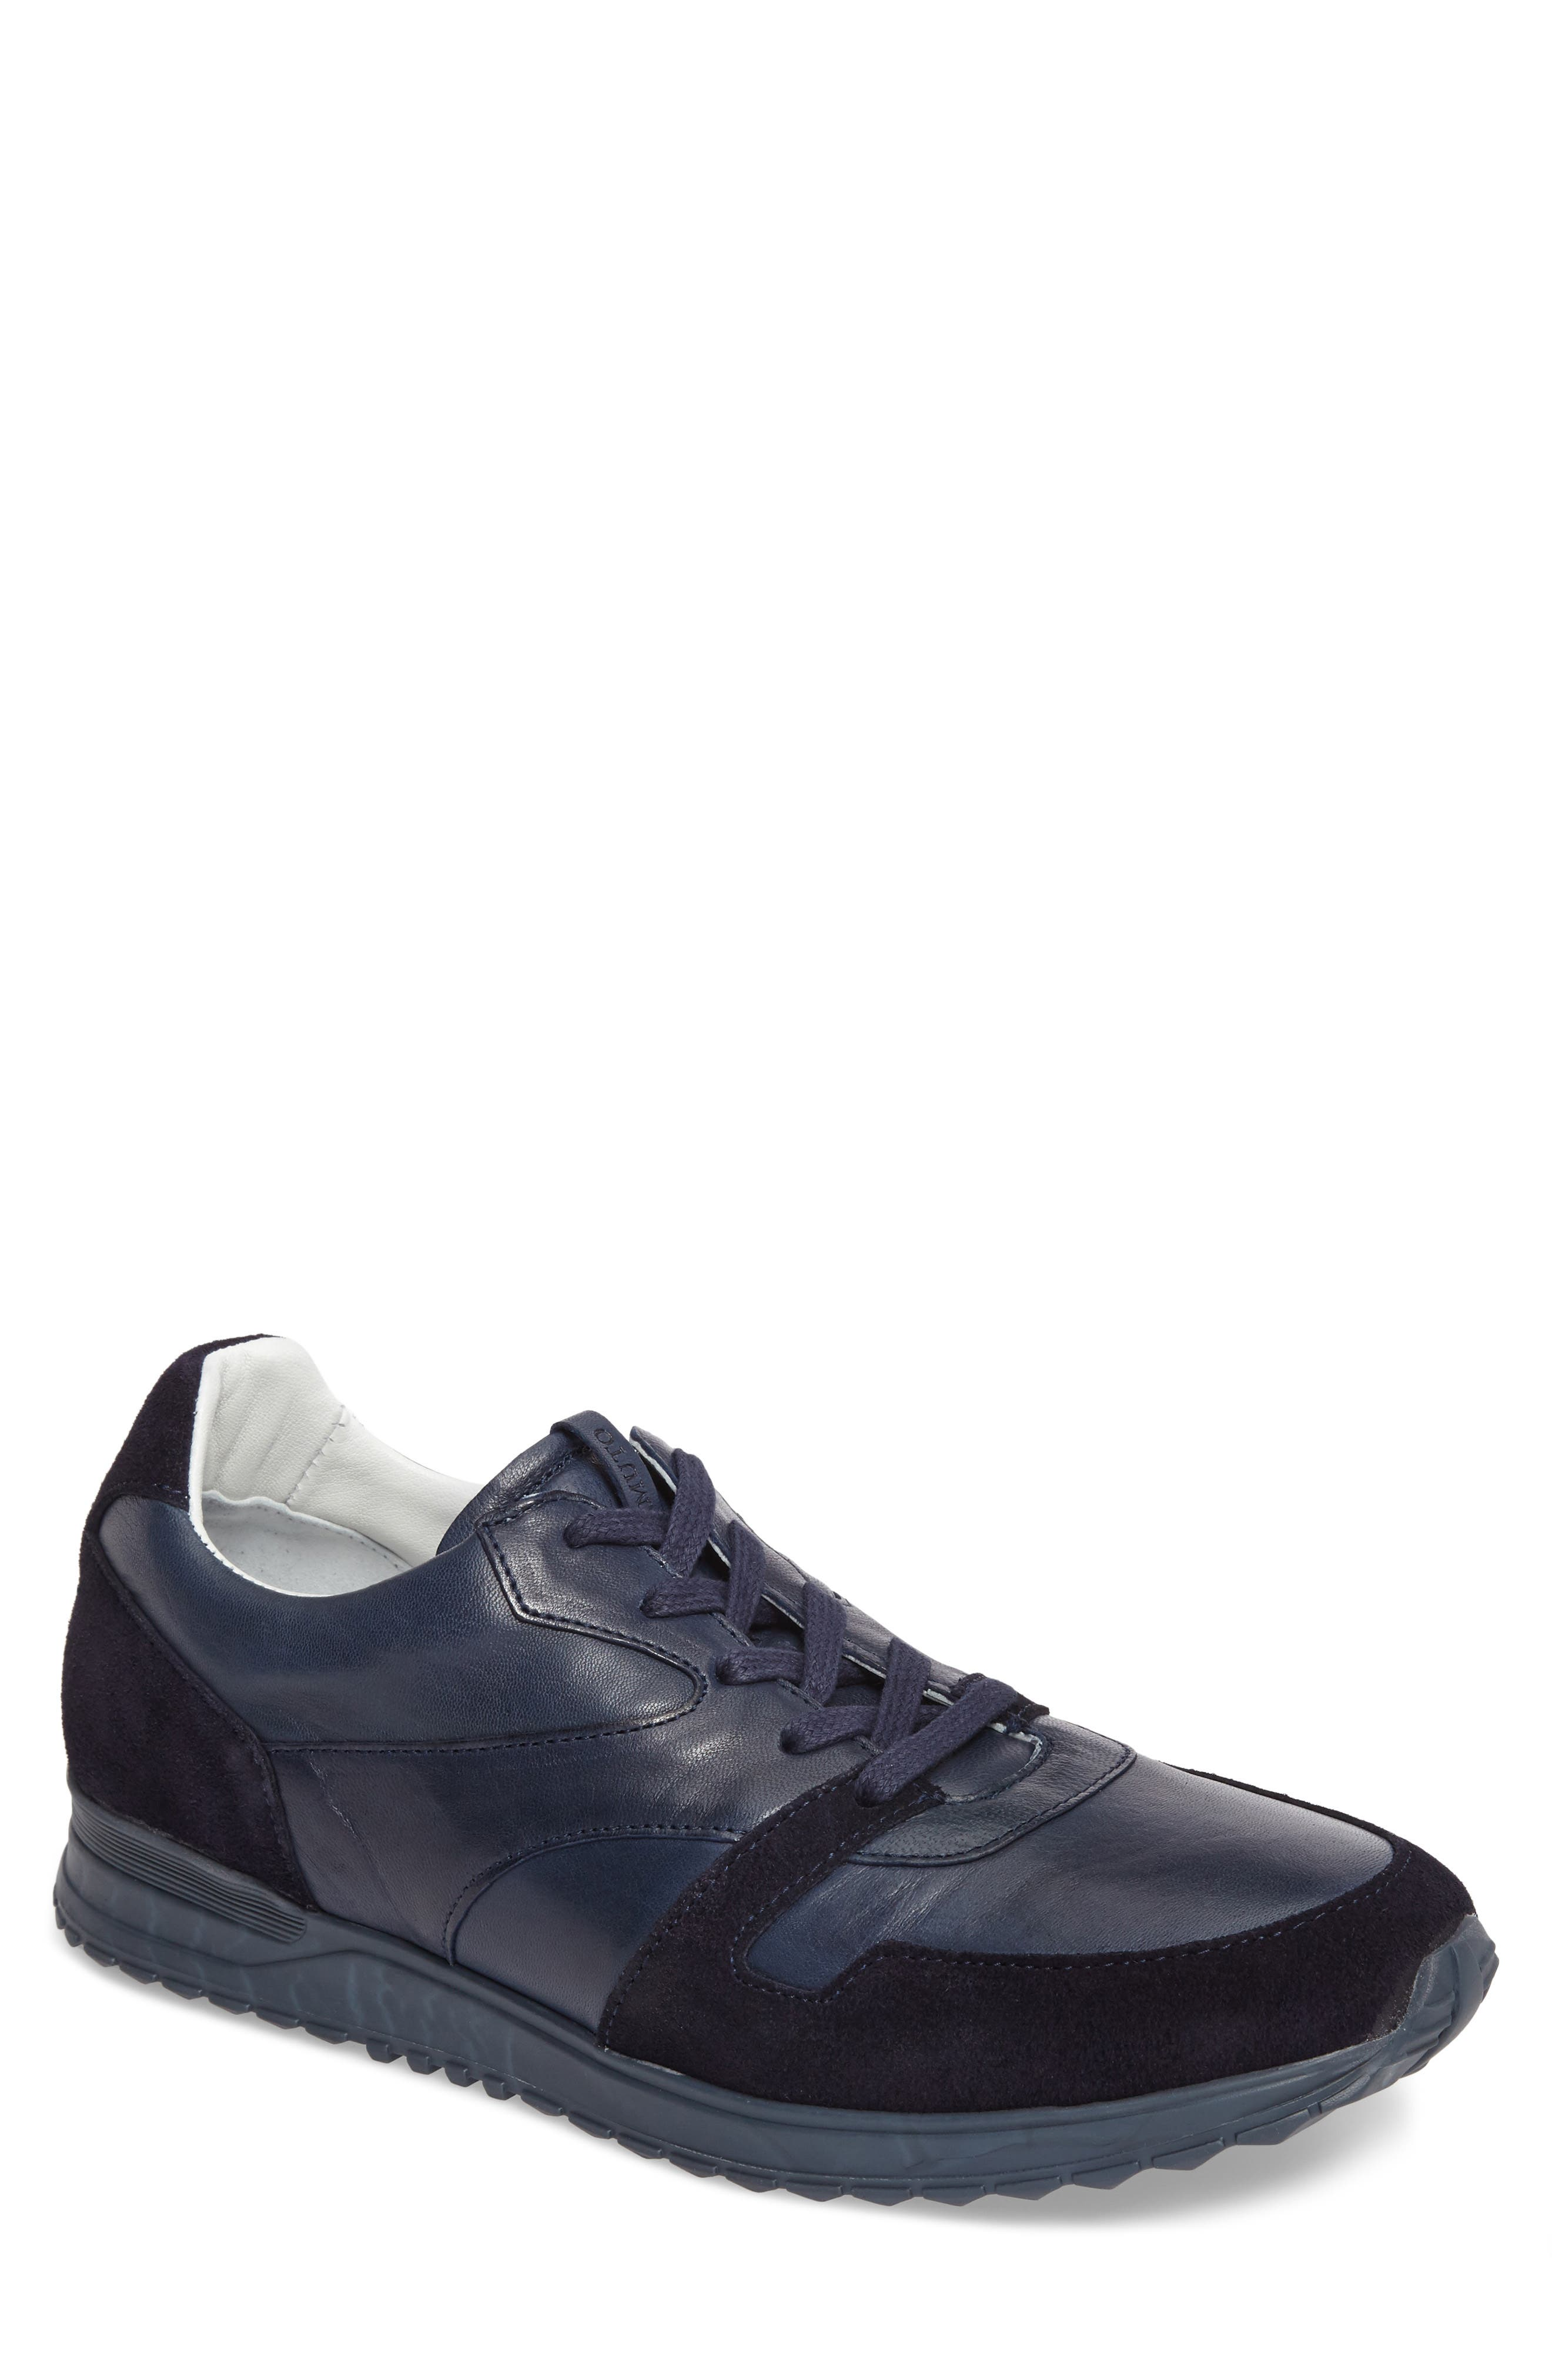 Foren Sneaker,                         Main,                         color, Marino Leather/ Suede